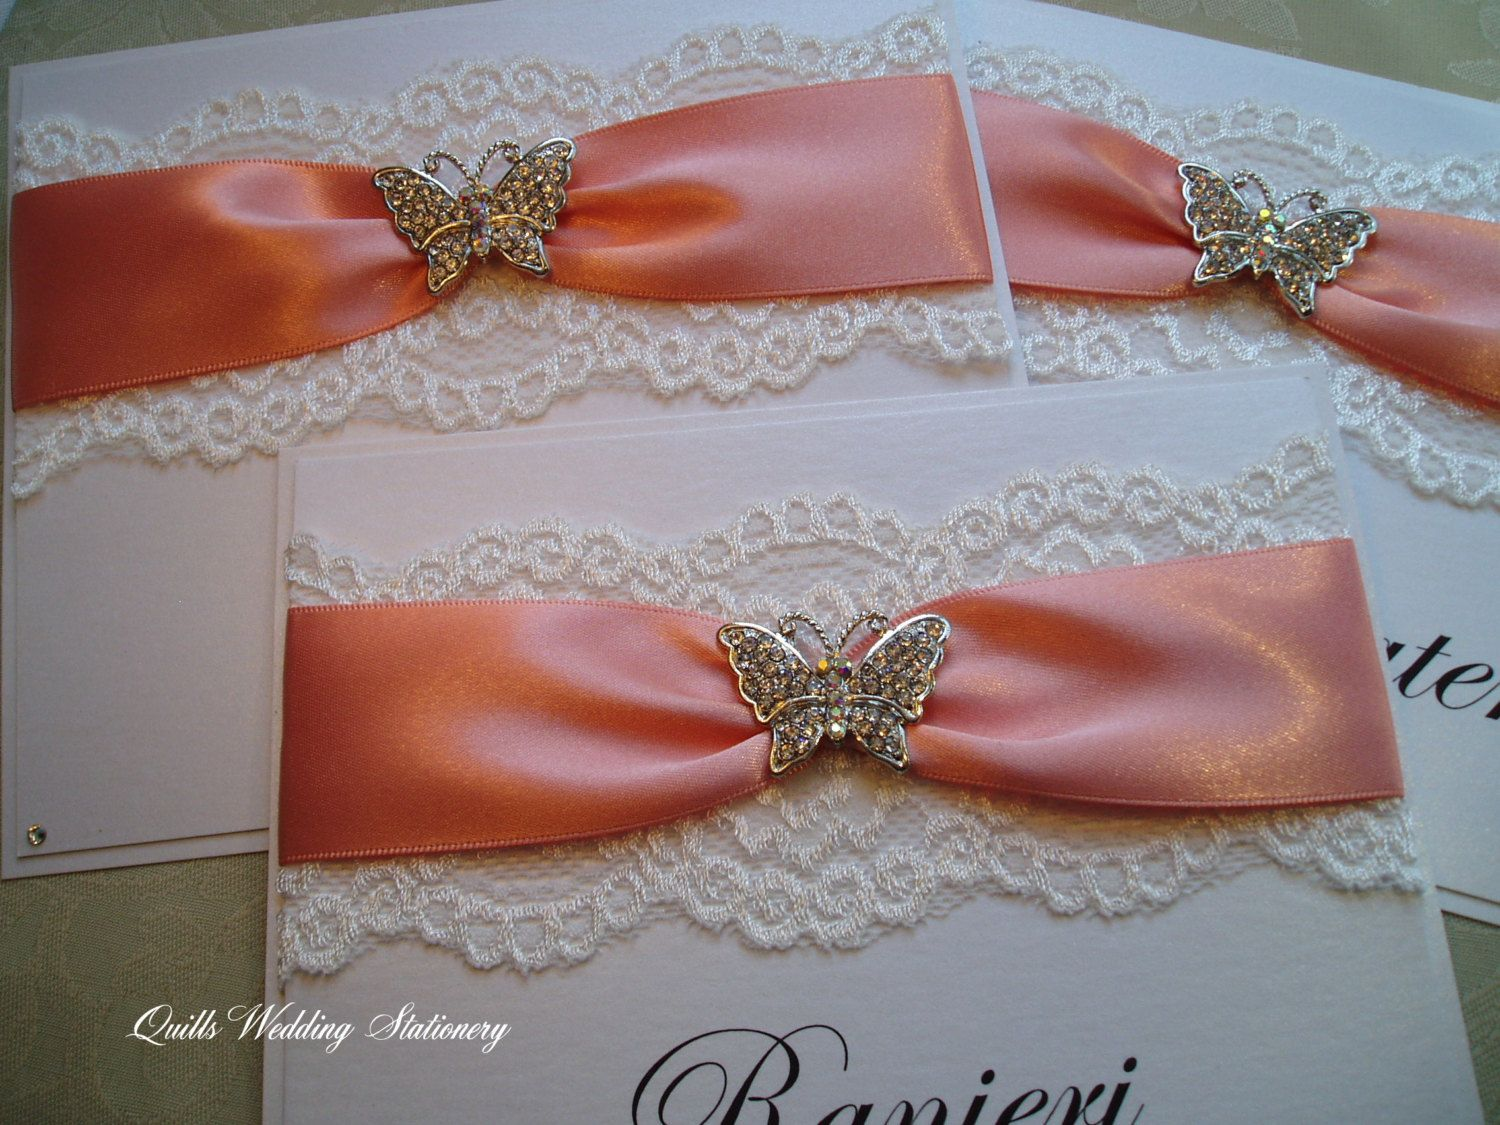 Butterfly hair accessories for weddings uk - Wedding Table Name Number Diamante Butterfly Vintage Wedding Country Style Table Name